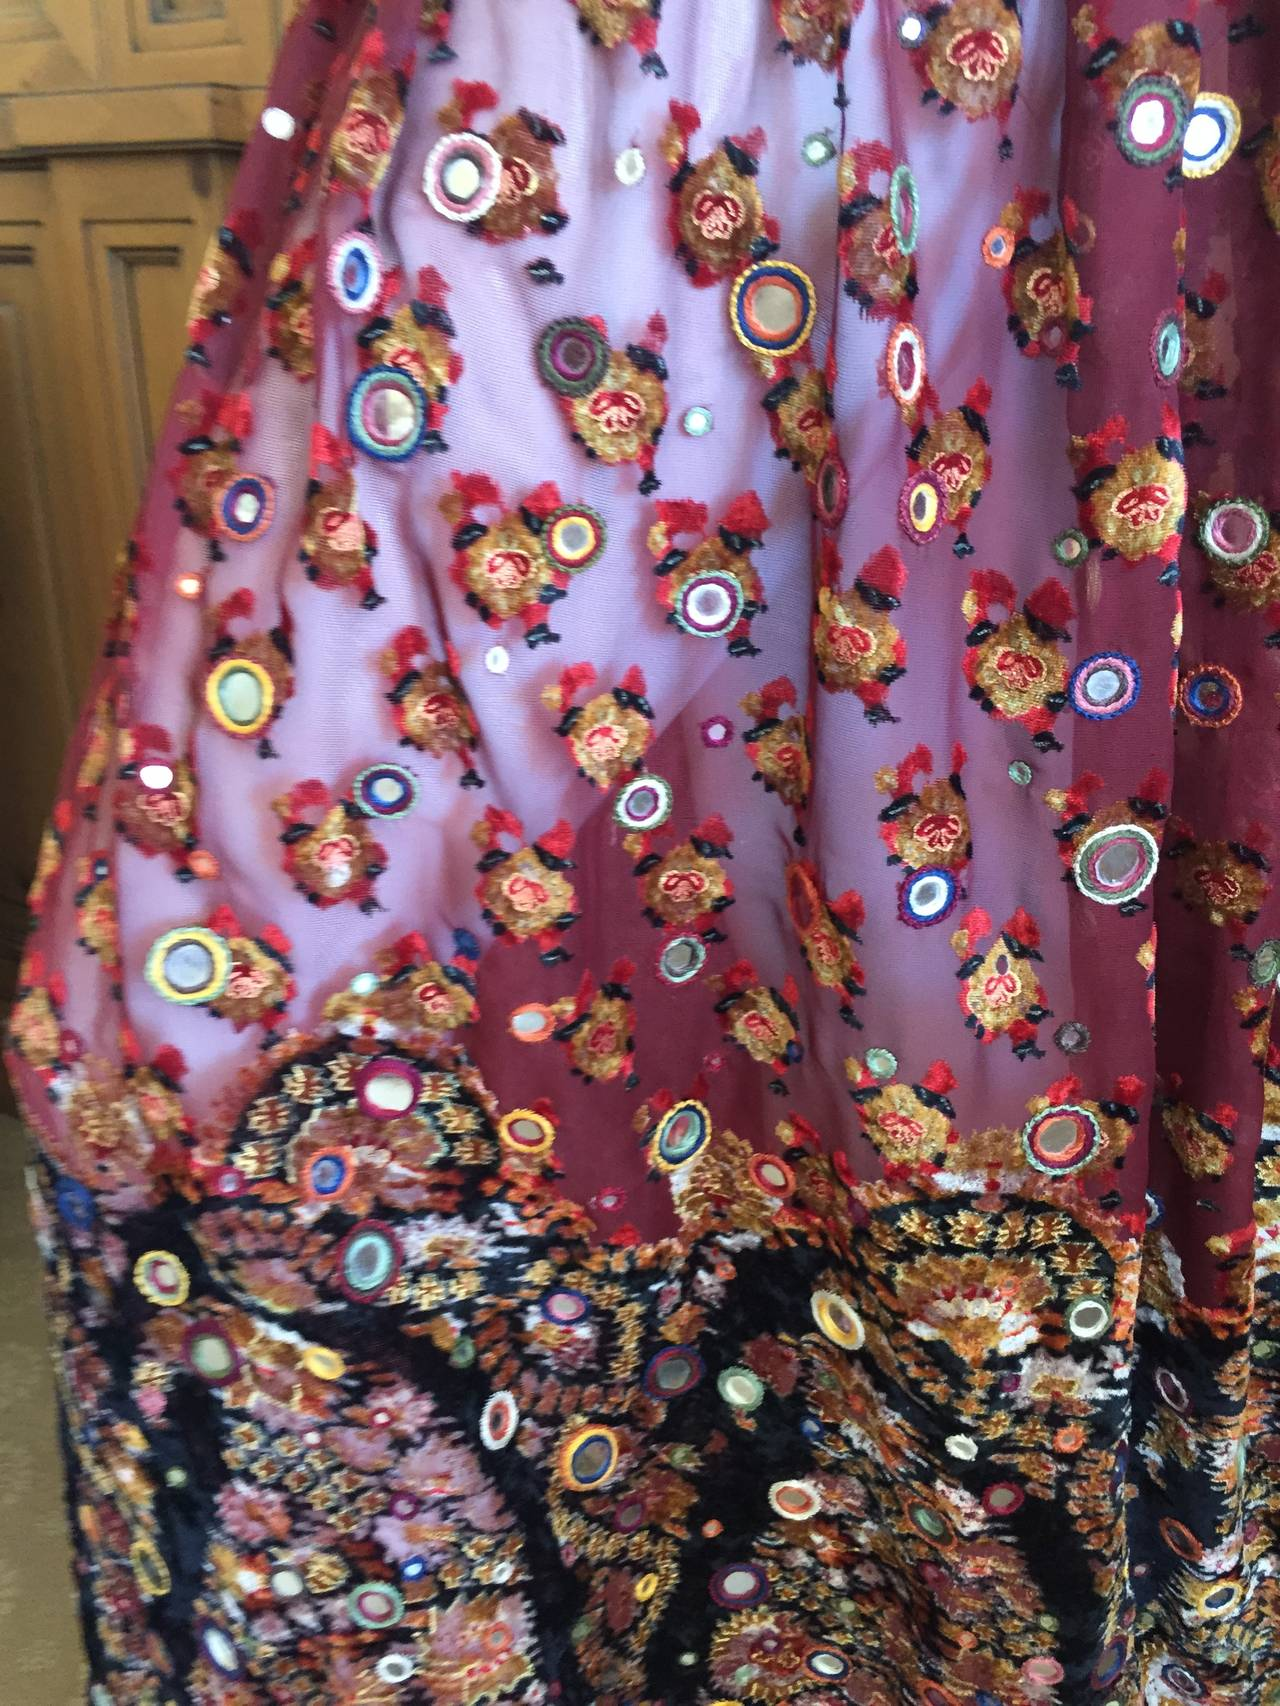 Oscar de la Renta Vintage Boho Gypsy Skirt with Mirrors 6